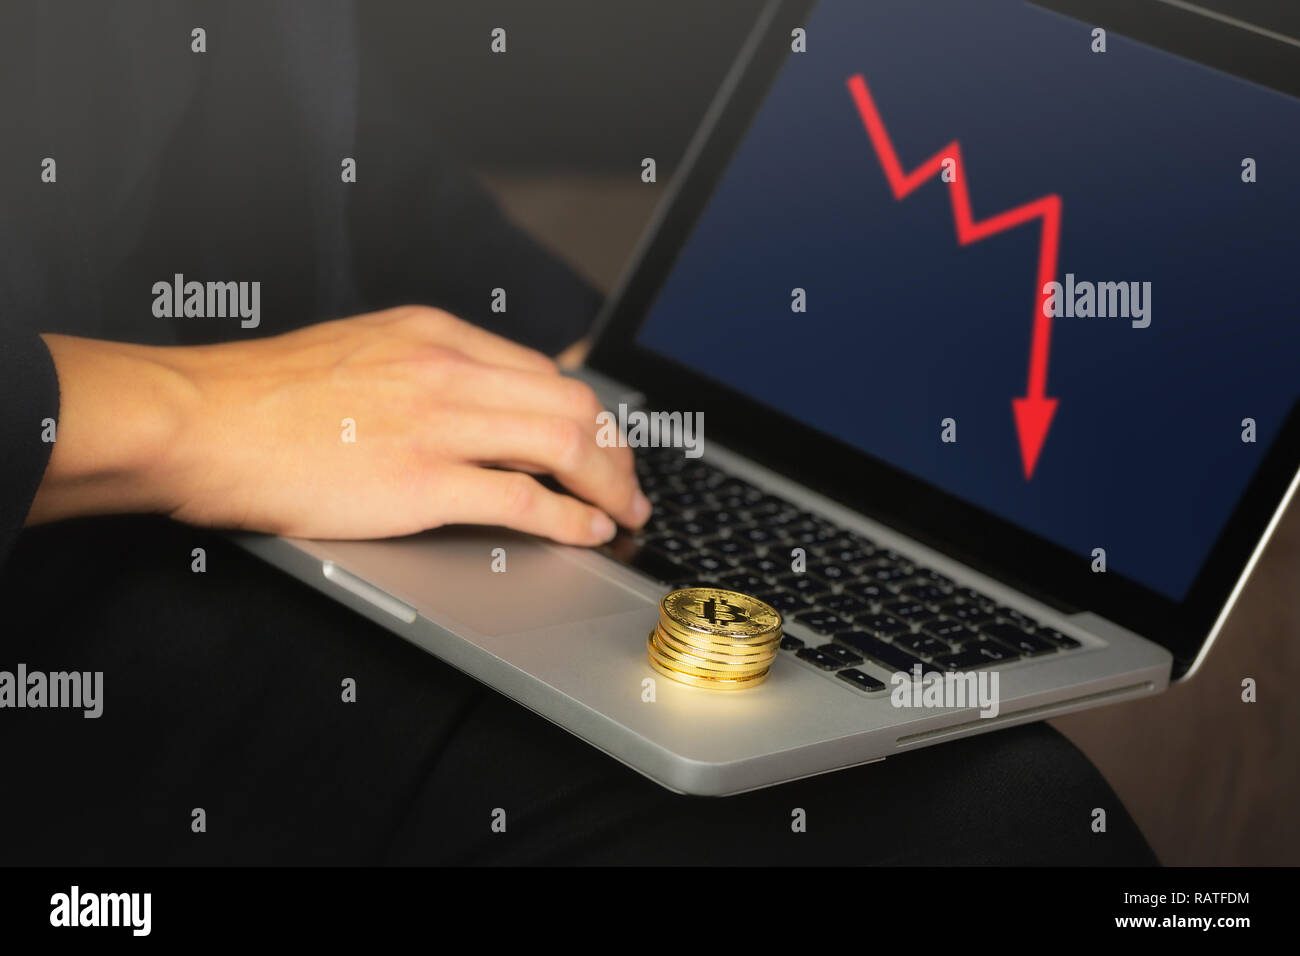 Businessman working on laptop with a golden bitcoin coins stack on it. Red chart, price crash concept. - Stock Image